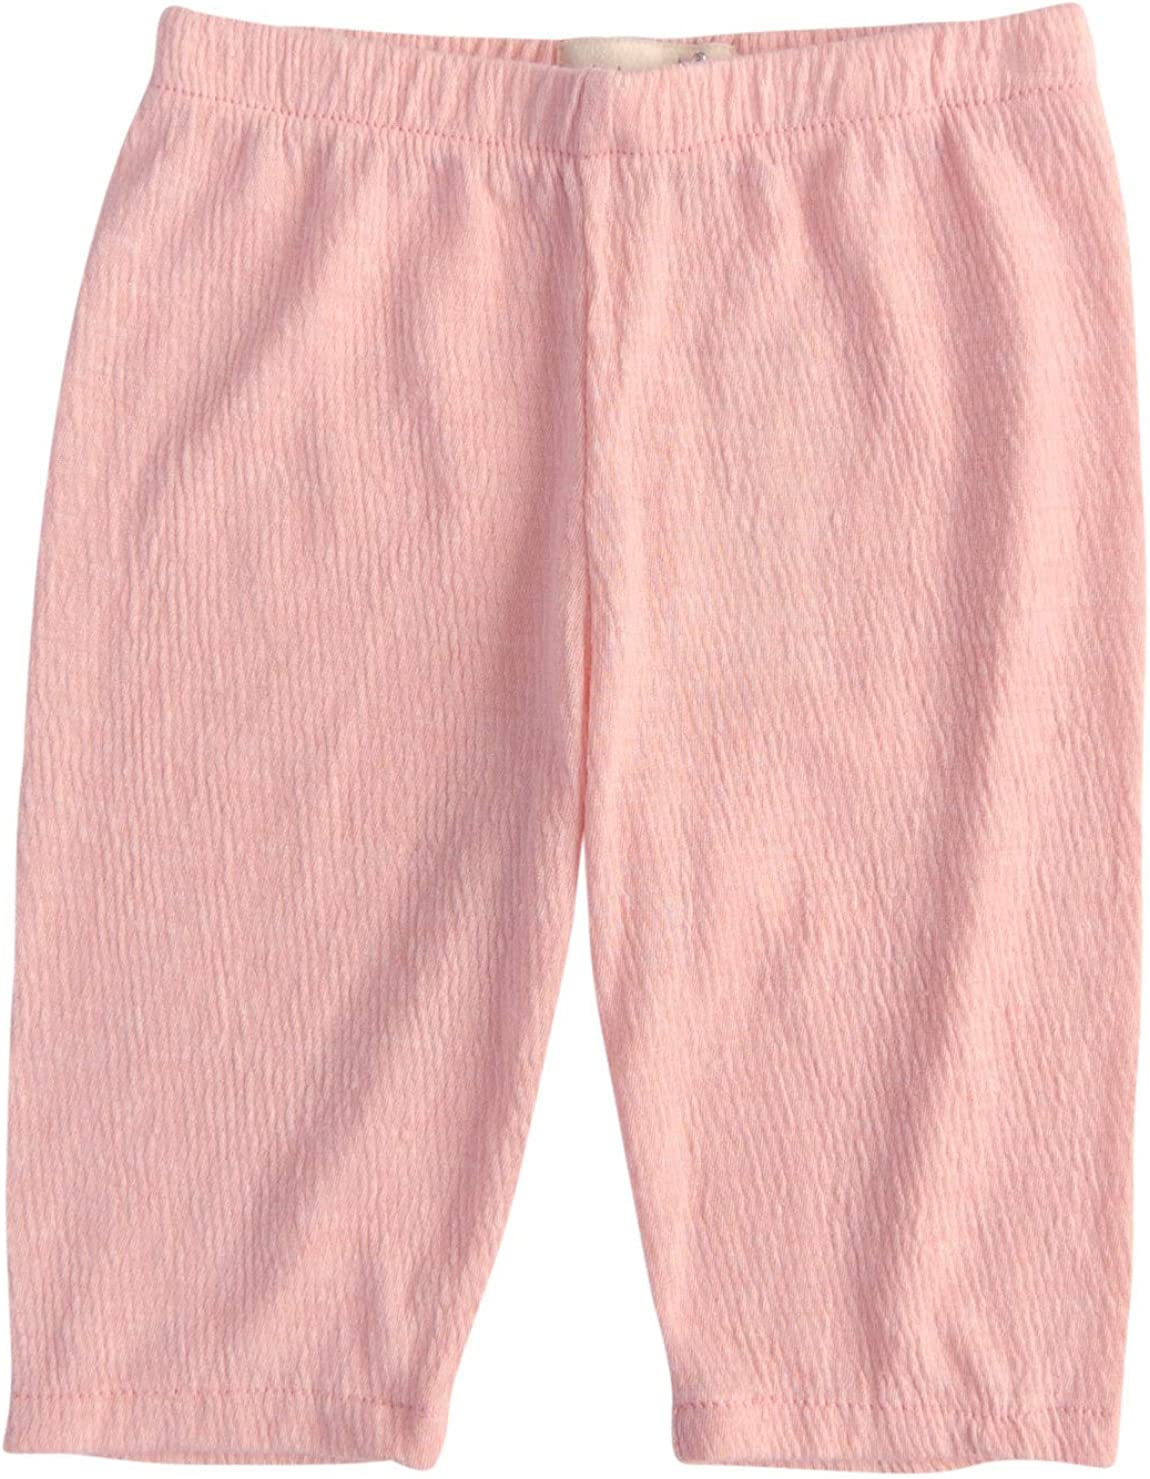 MikiMiette Baby Girls Crop Leggings Super Soft and Comfortbale 65/% Cotton 35/% Polyester